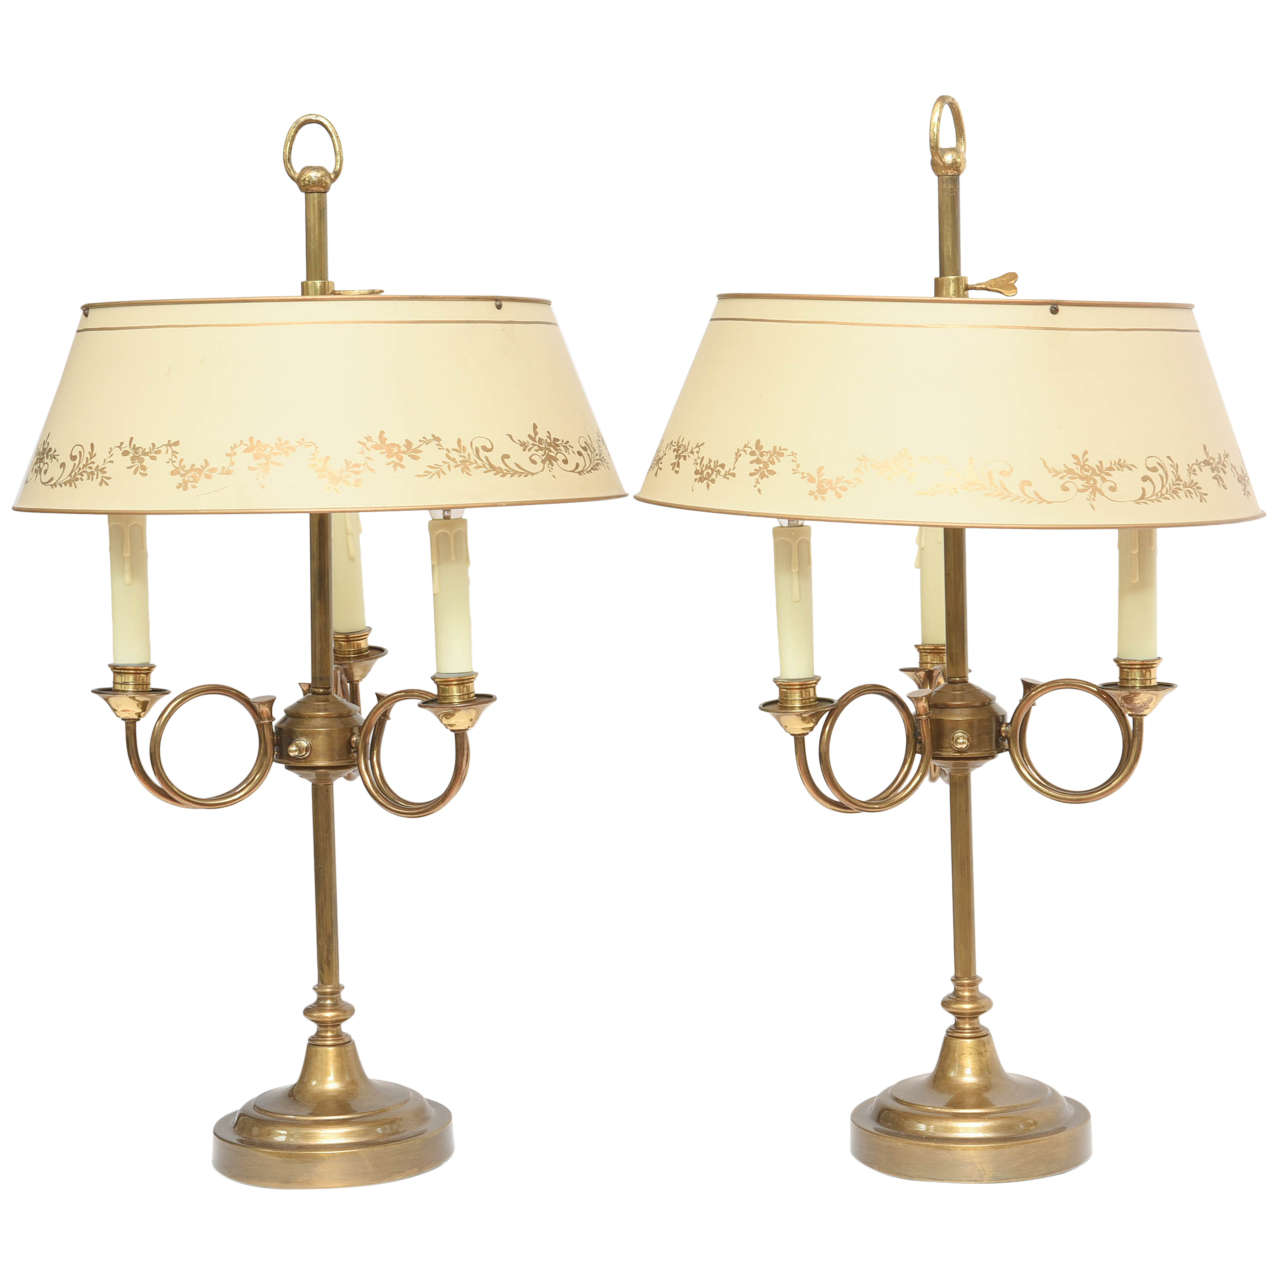 Pair of French Bouillotte Table Lamps with Tole Shades